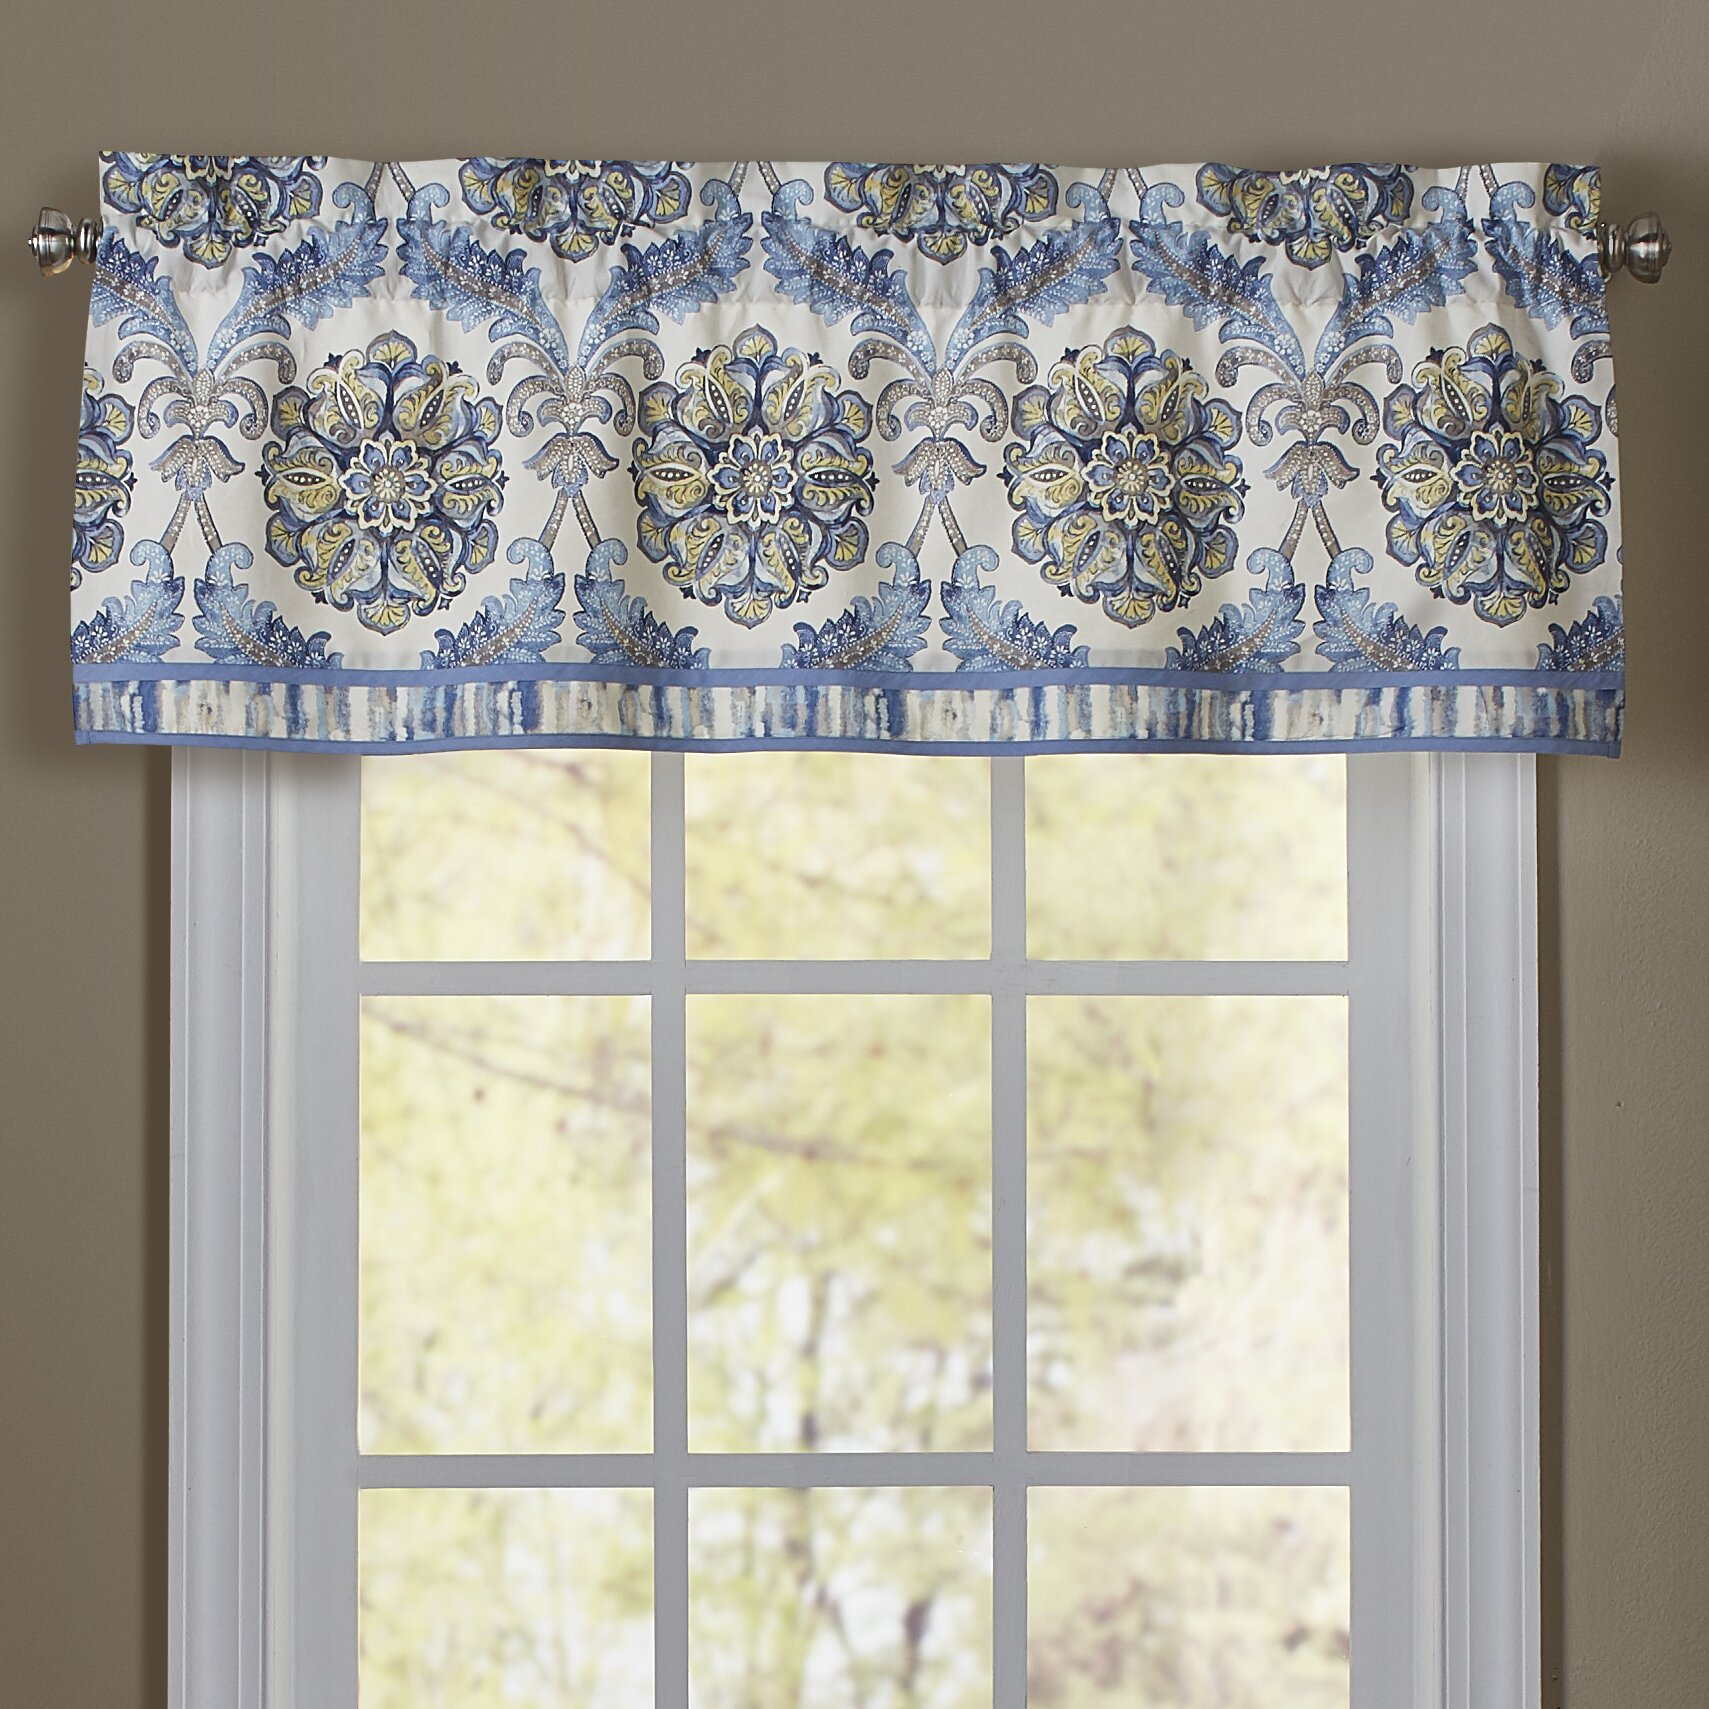 "Waverly Over The Moon 16"" Curtain Valance & Reviews"